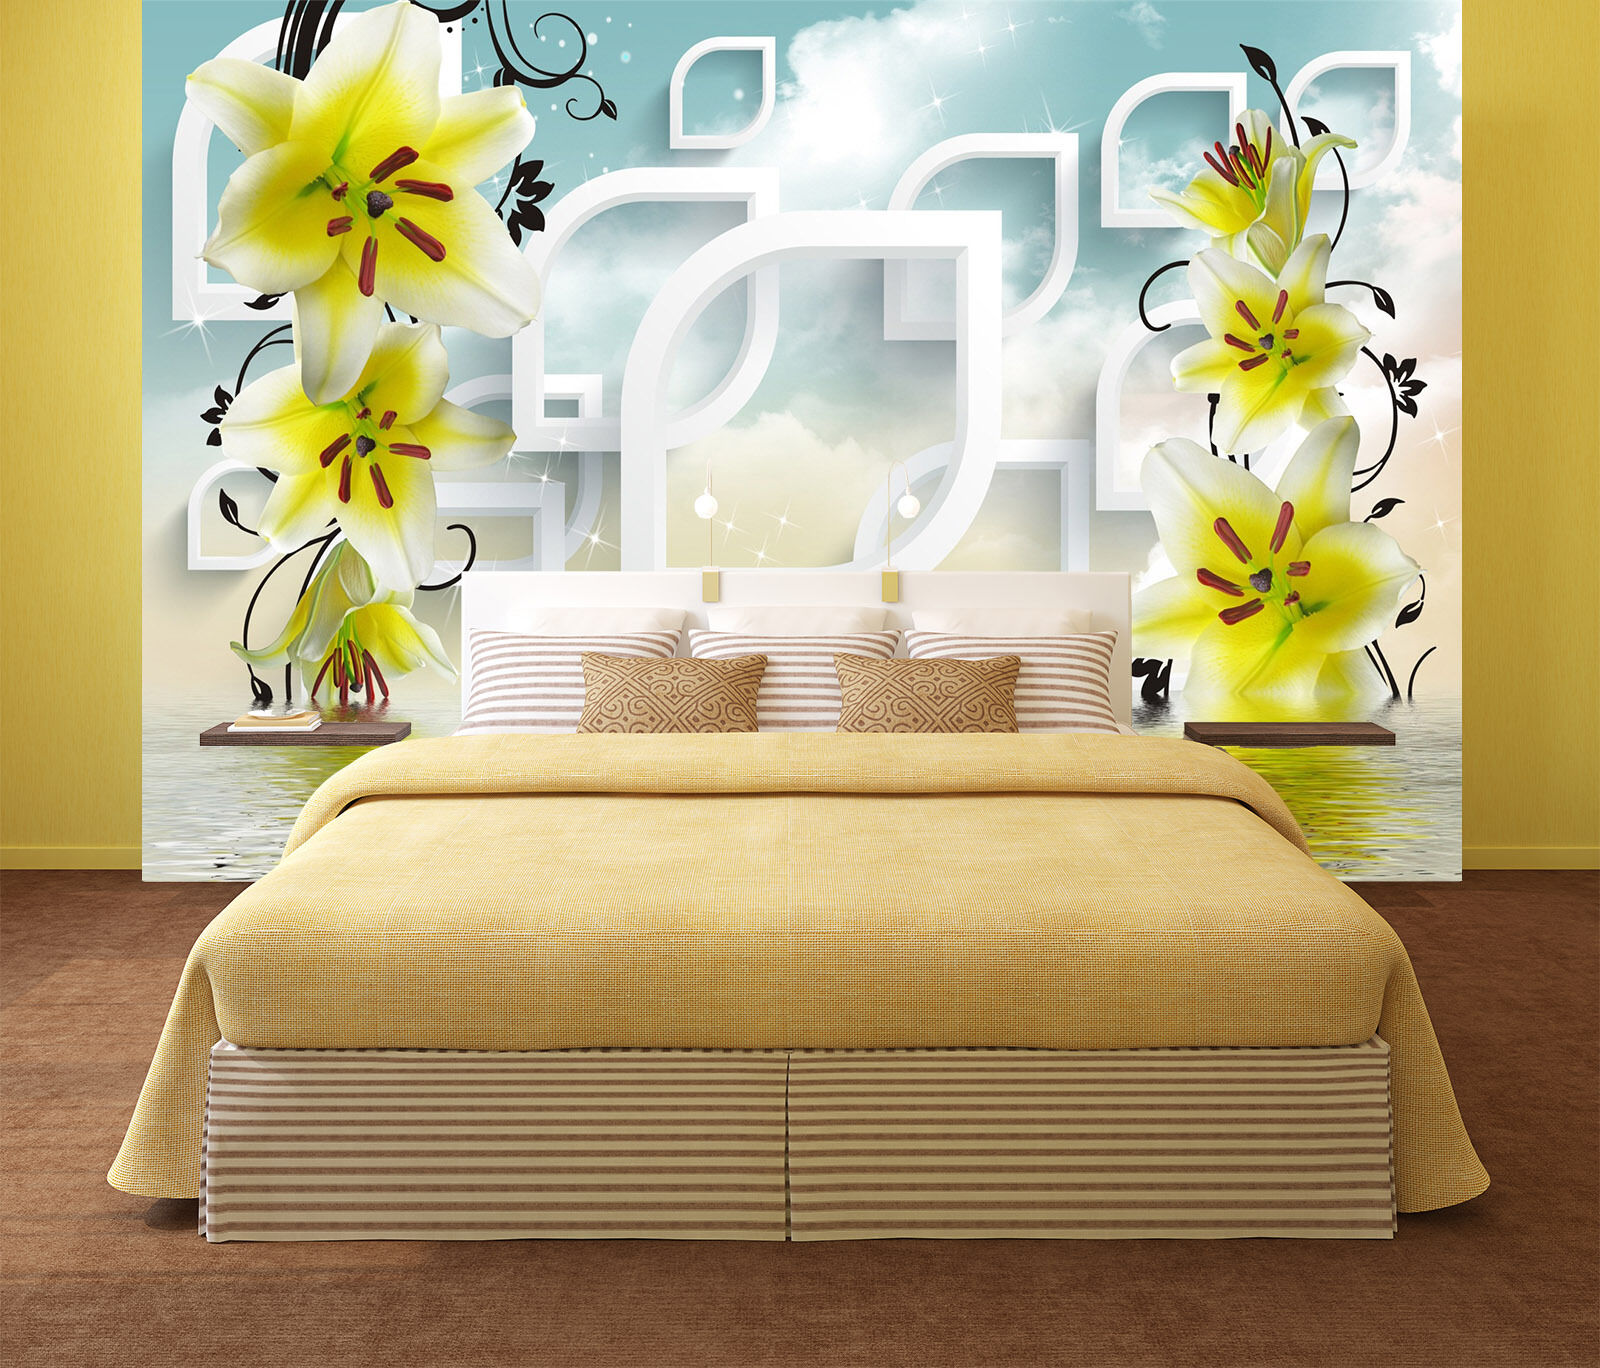 3D Farbeful flowers, water 3 Wall Paper Print Wall Decal Deco Indoor Wall Murals